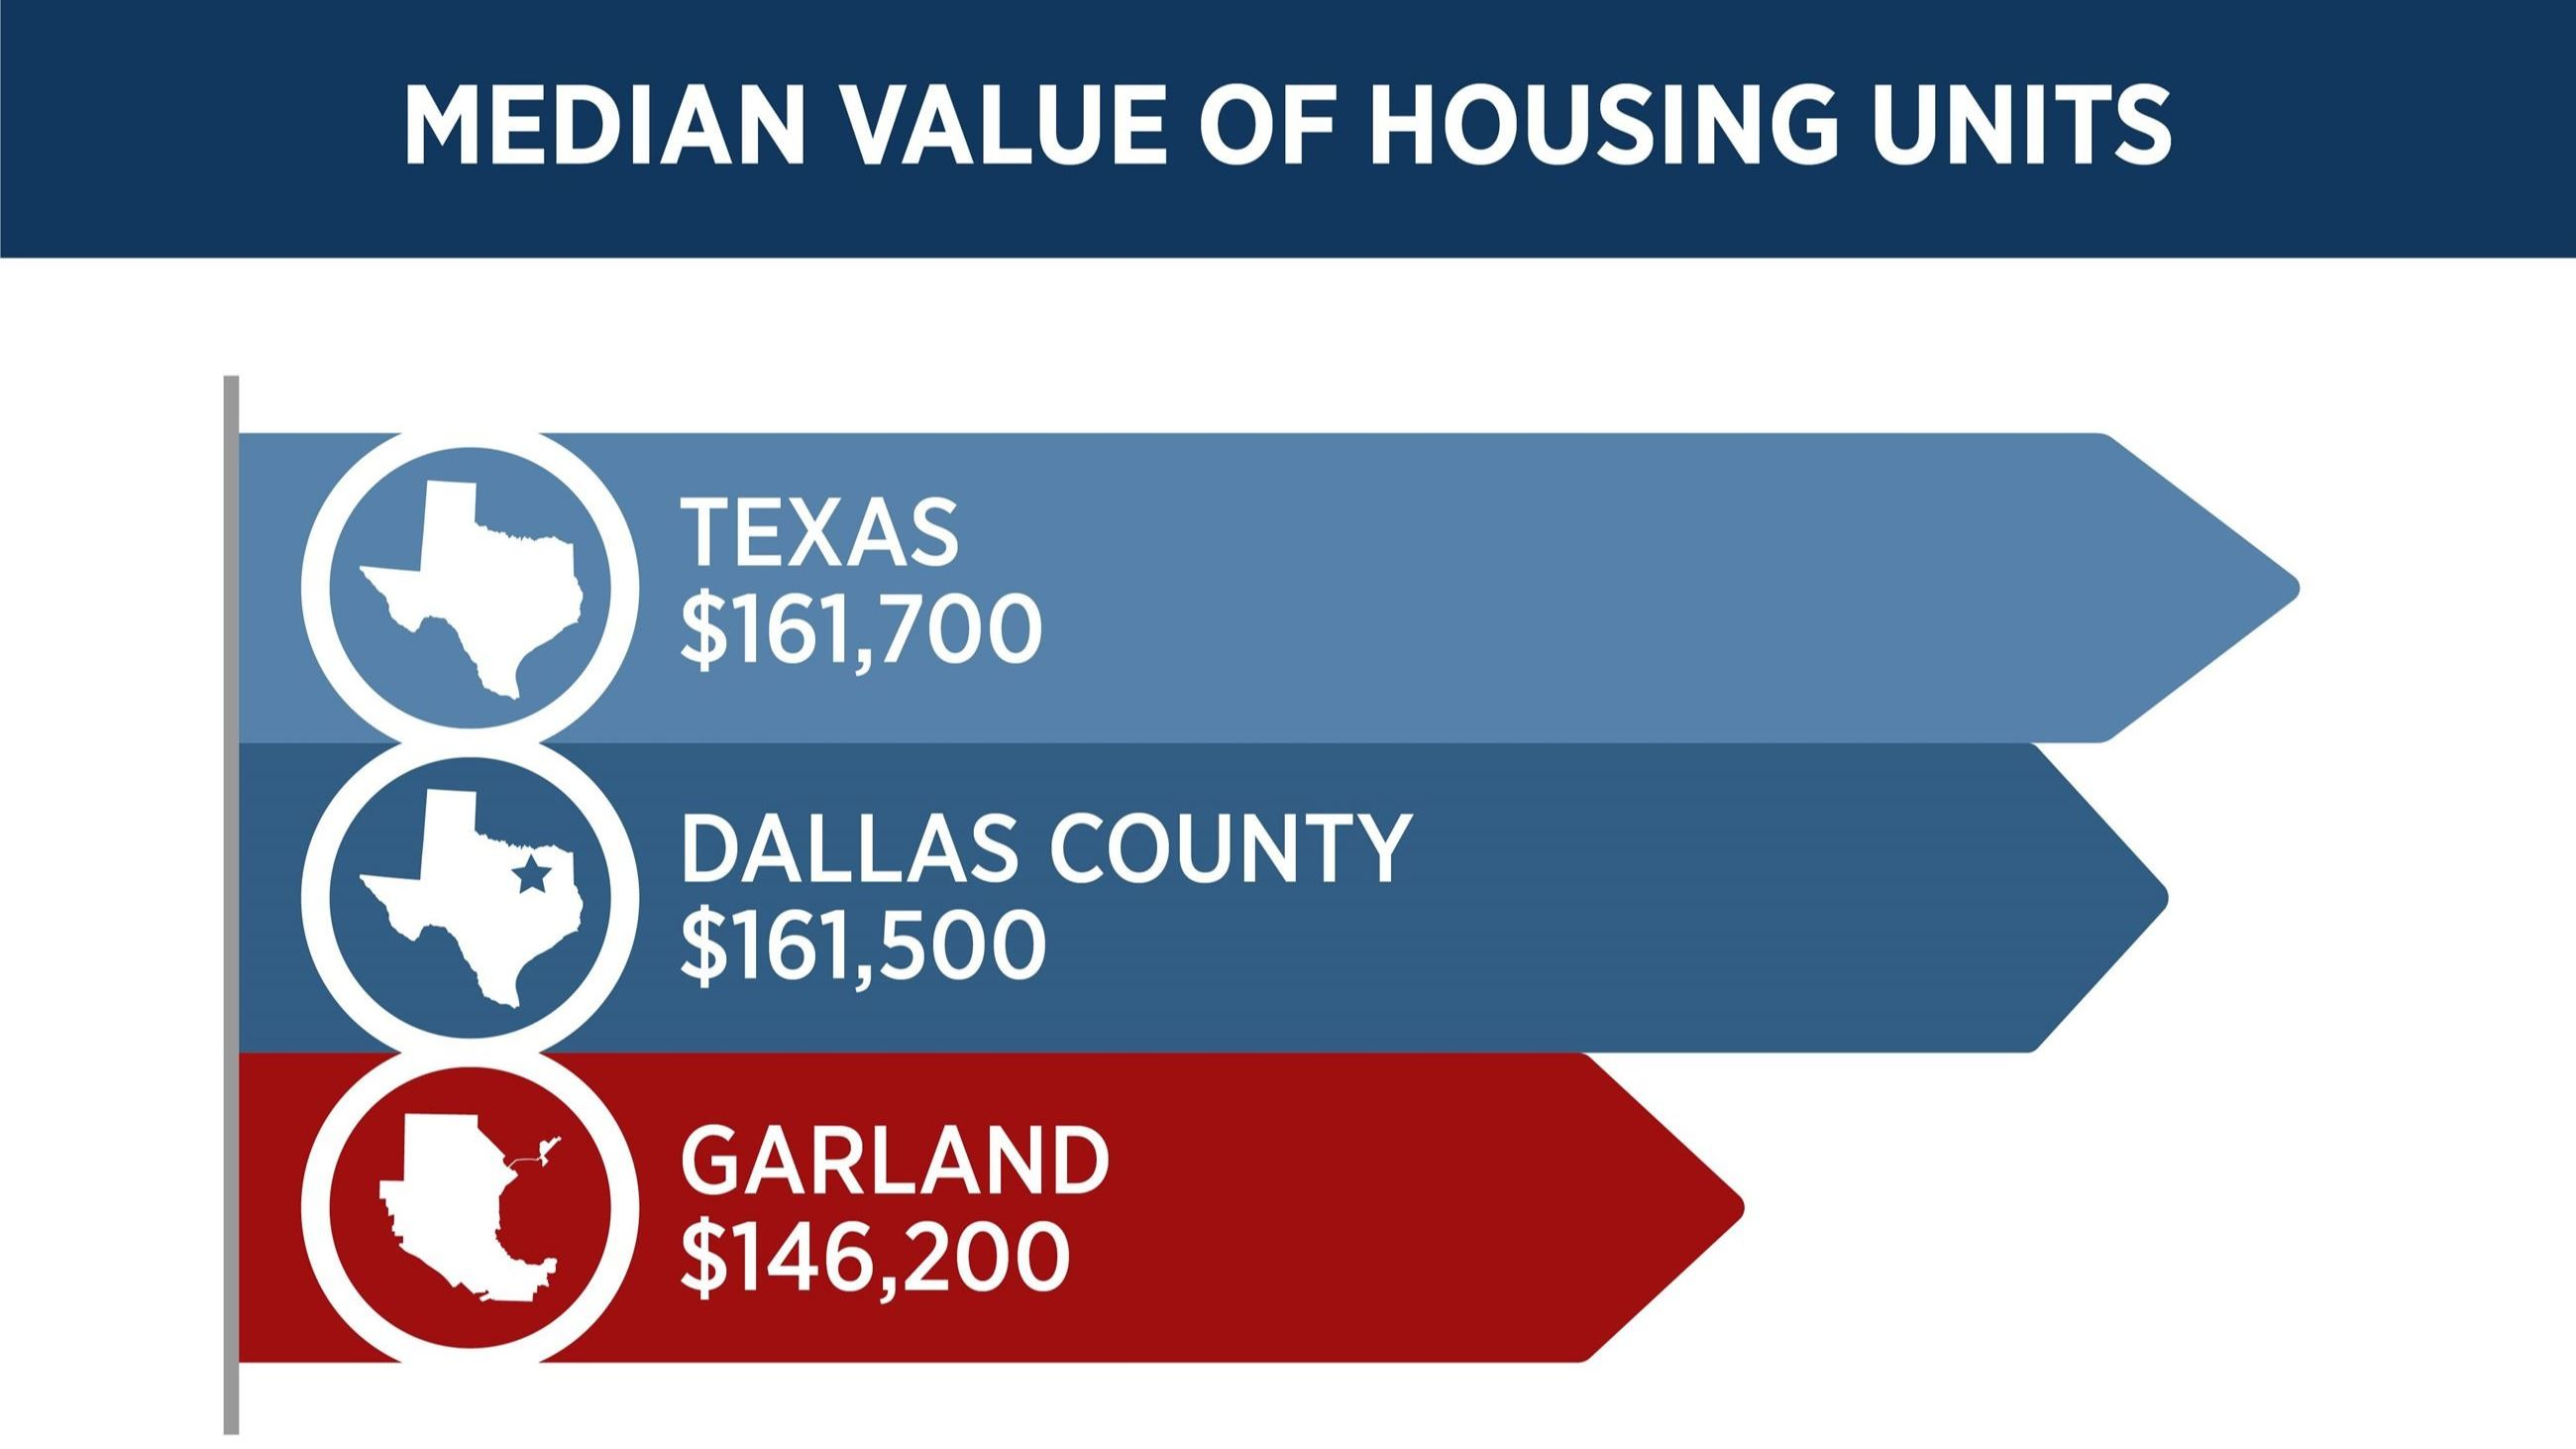 Median home value